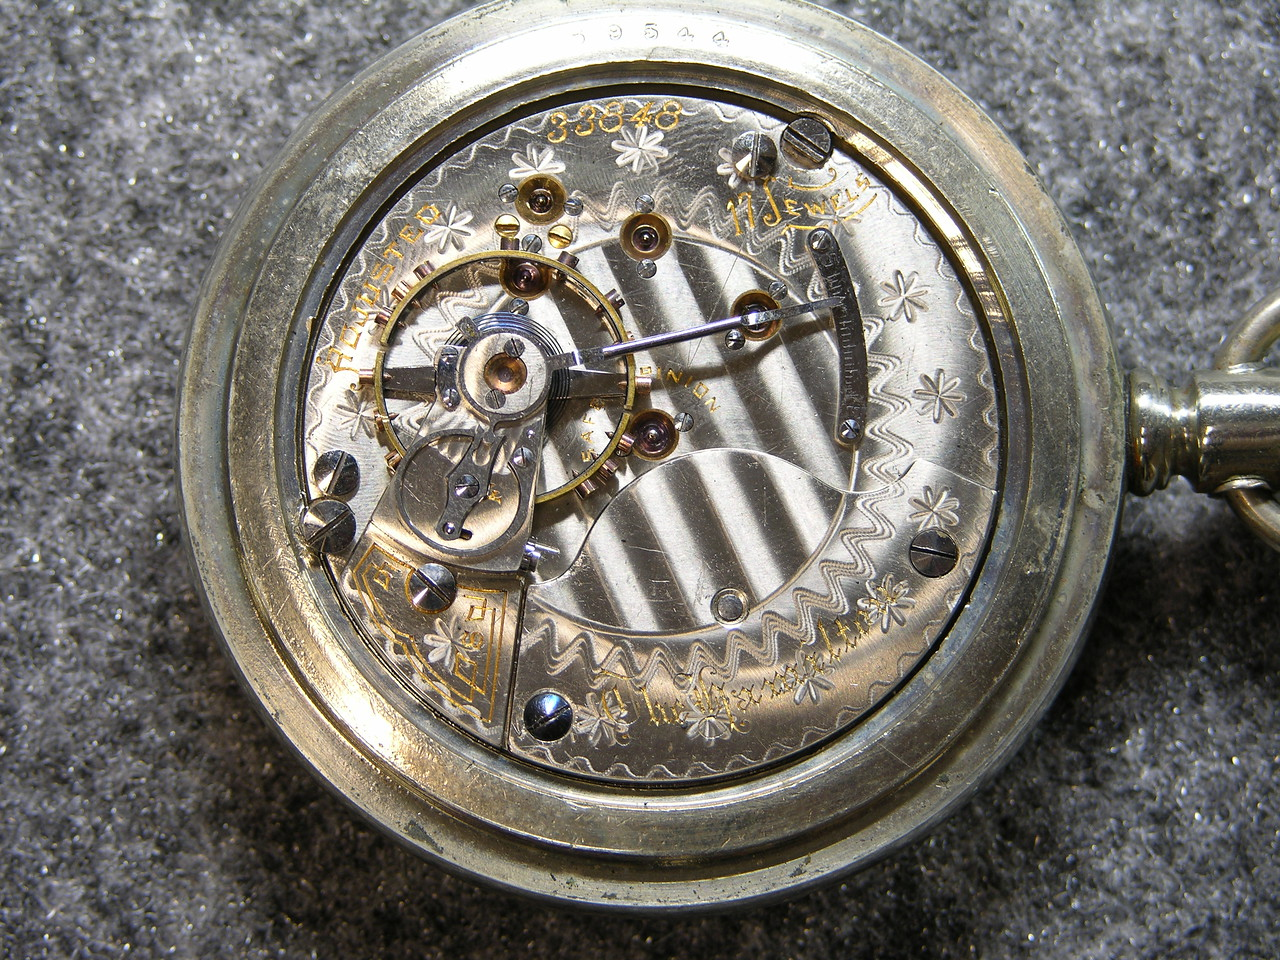 935 movement, SN 33848                          17 jewels, manufactured 1900-1909          total production 1,700